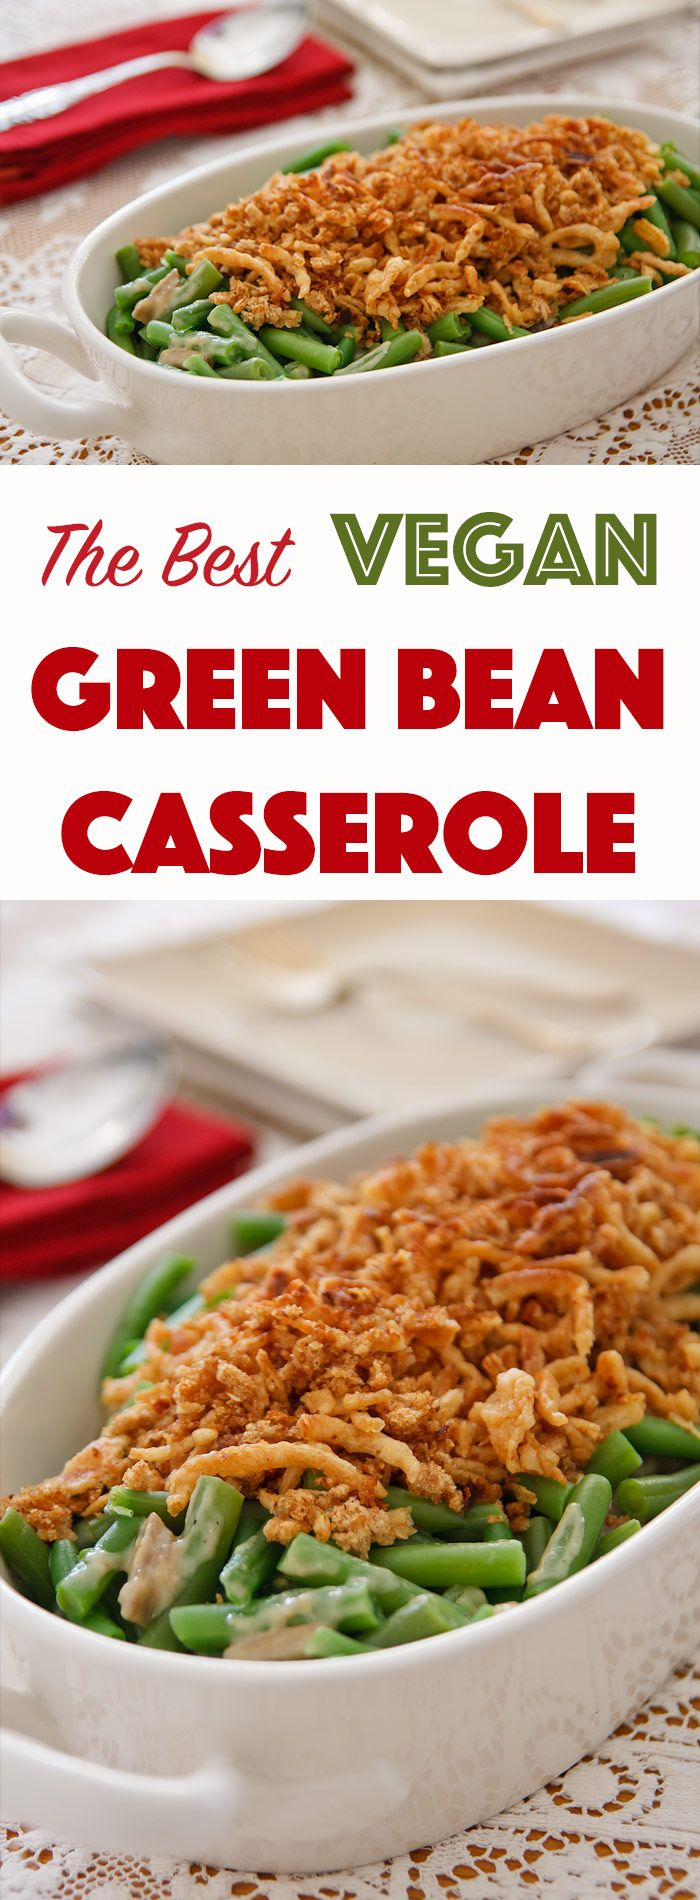 vegan green bean casserole vegan christmas vegan thanksgiving vegan ...